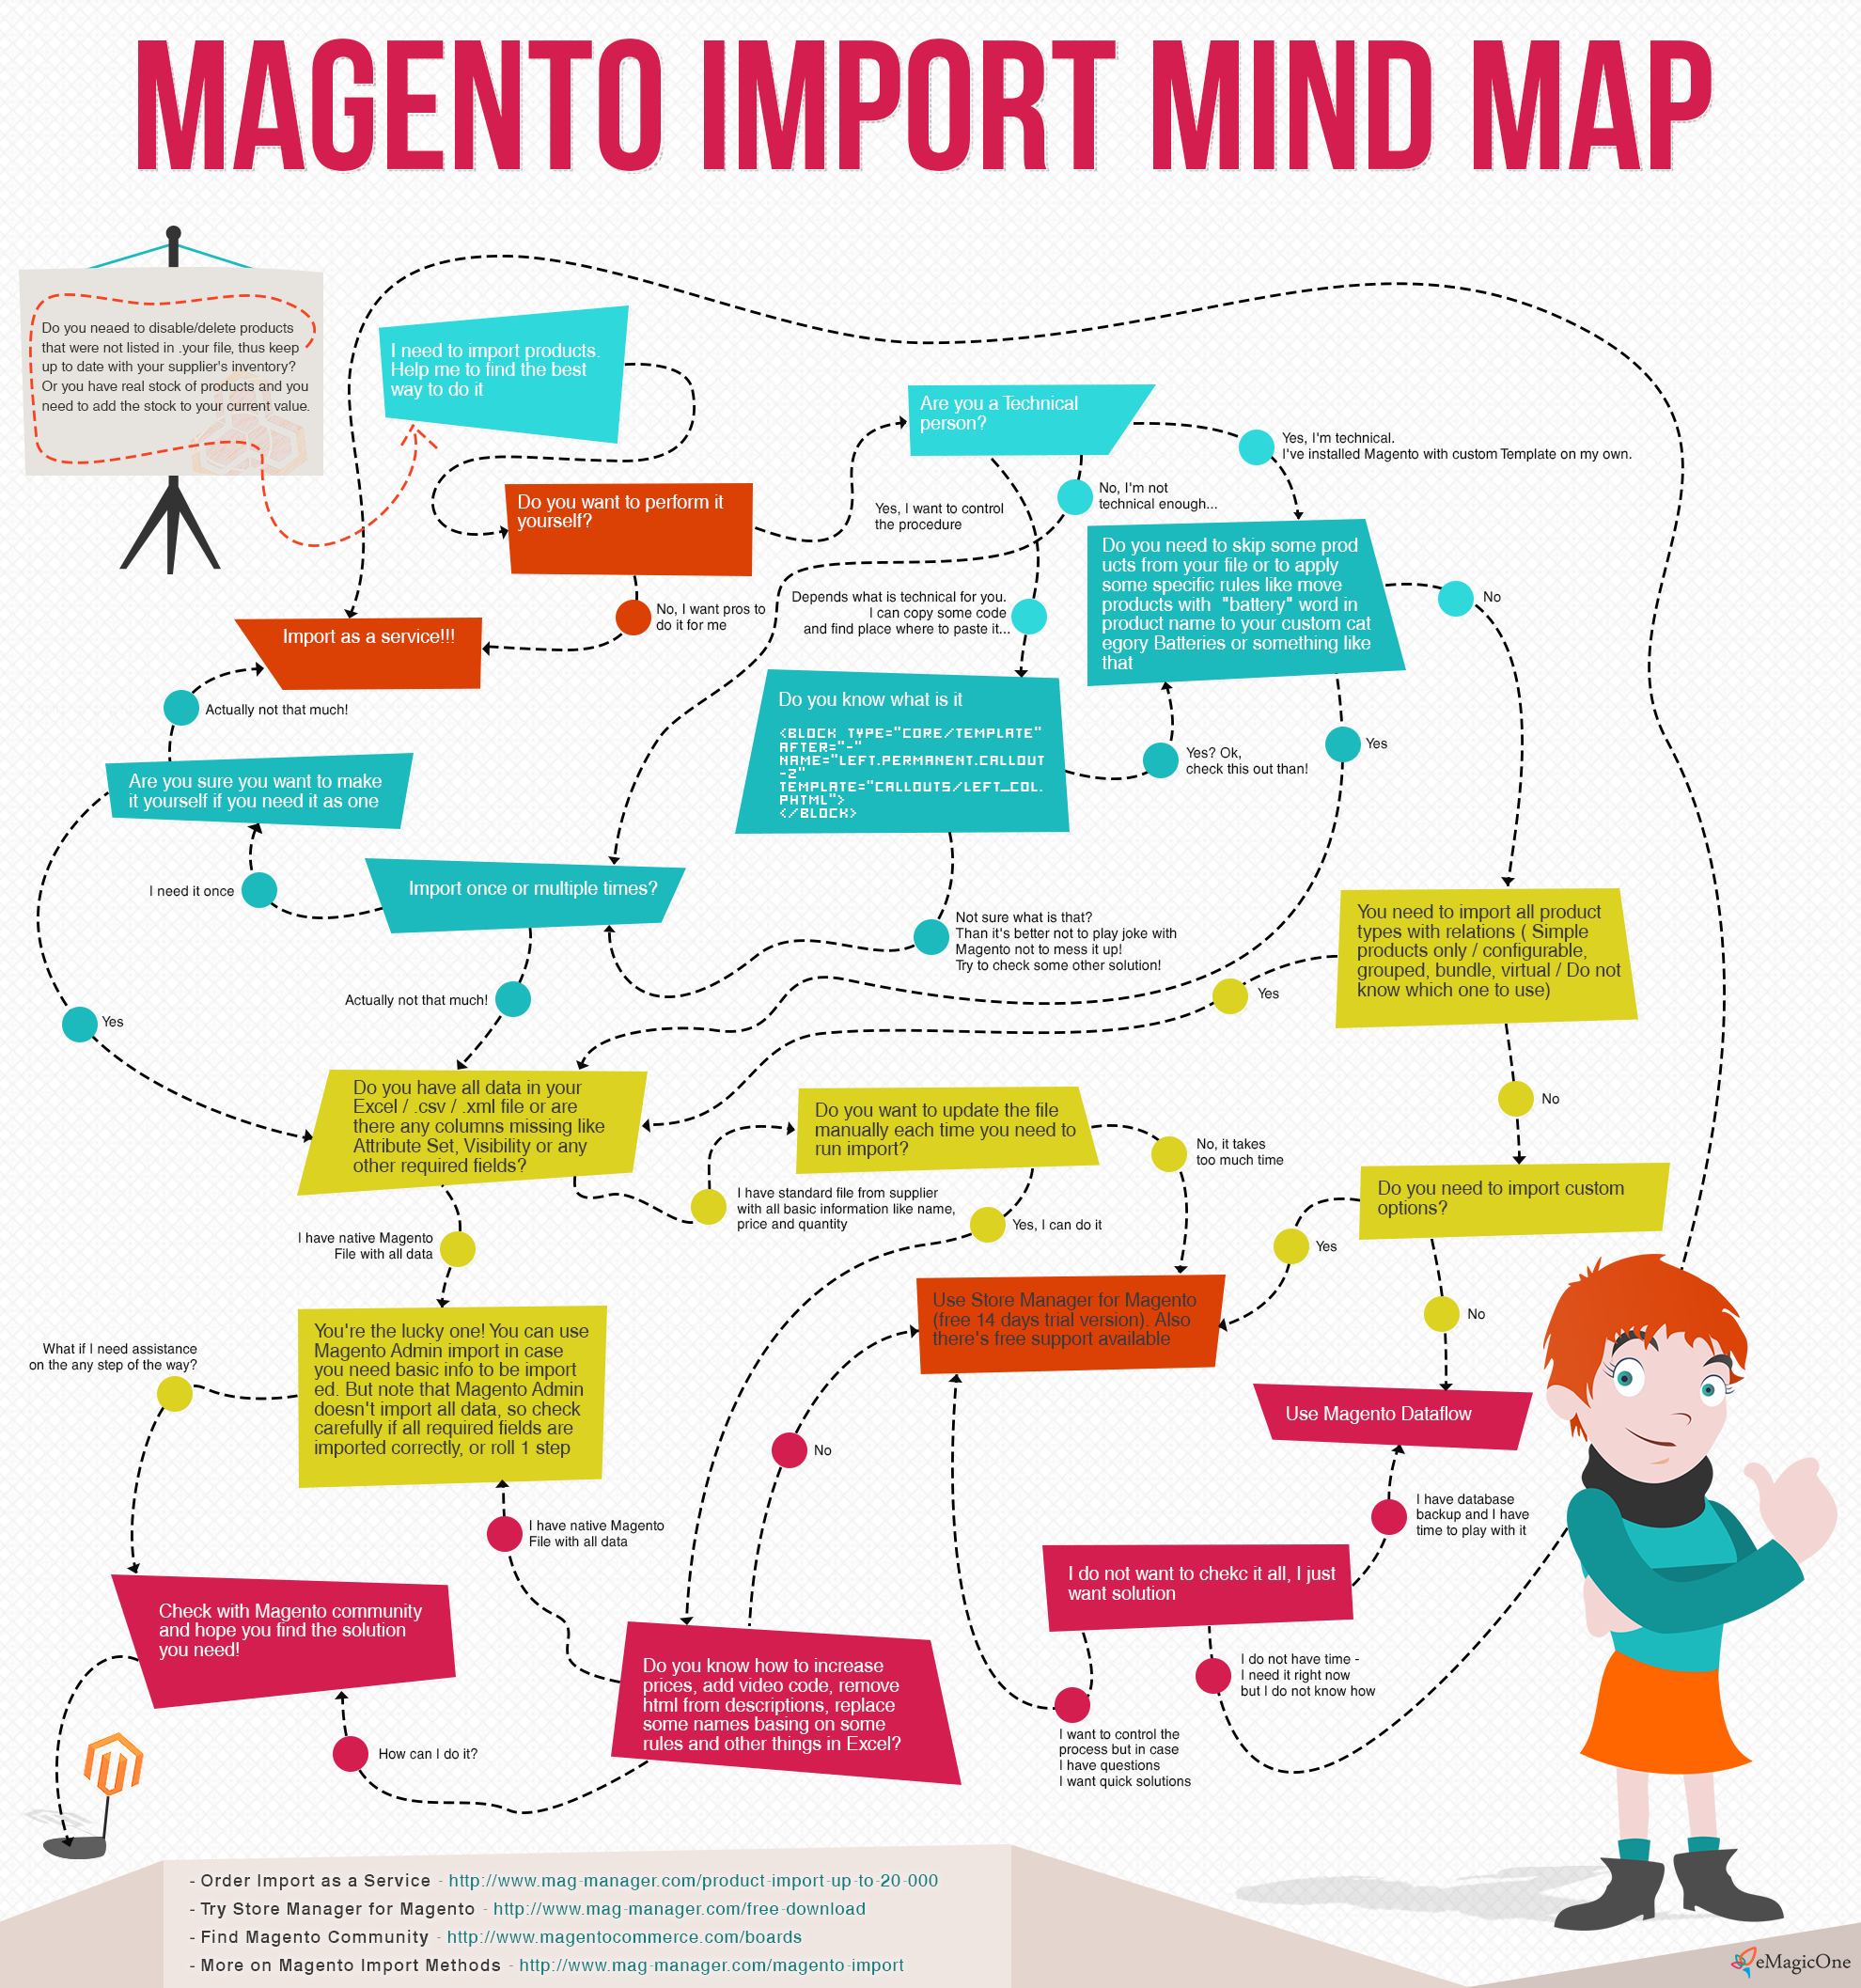 Magento Import Mind Map